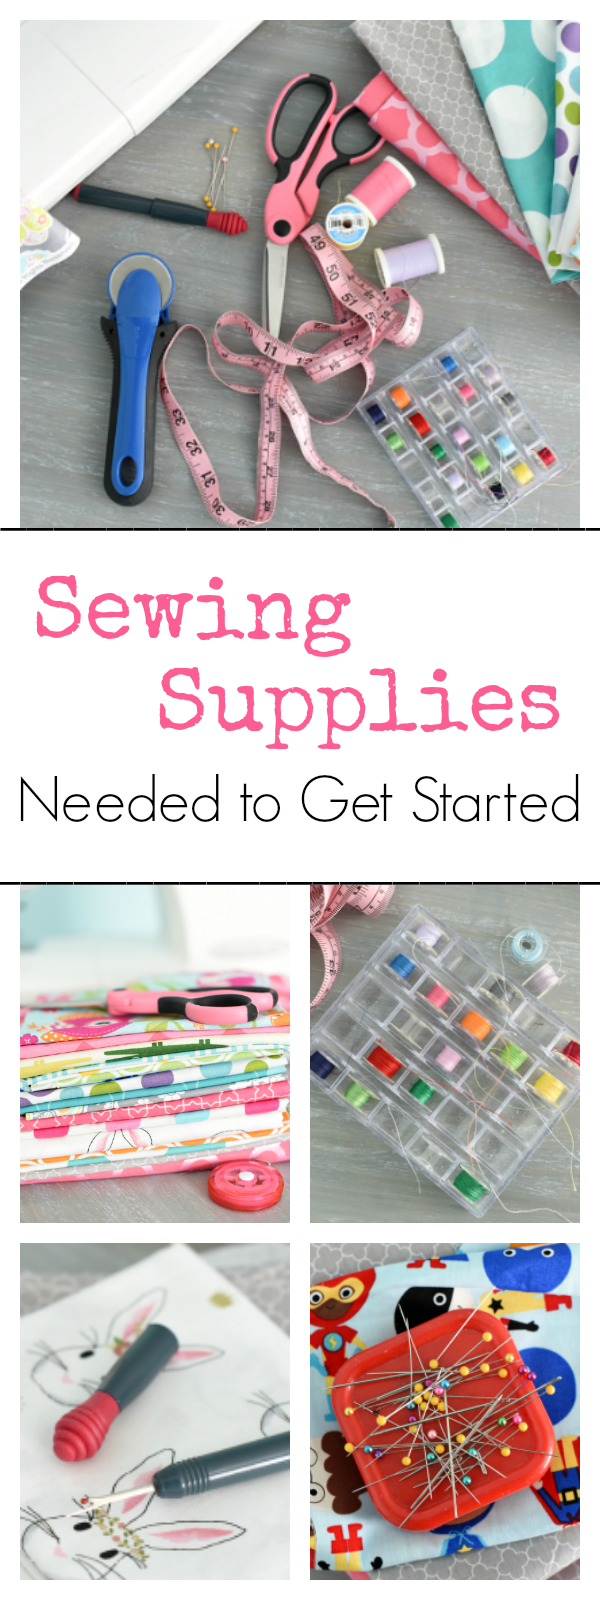 Sewing Supplies Needed to Get Started Sewing